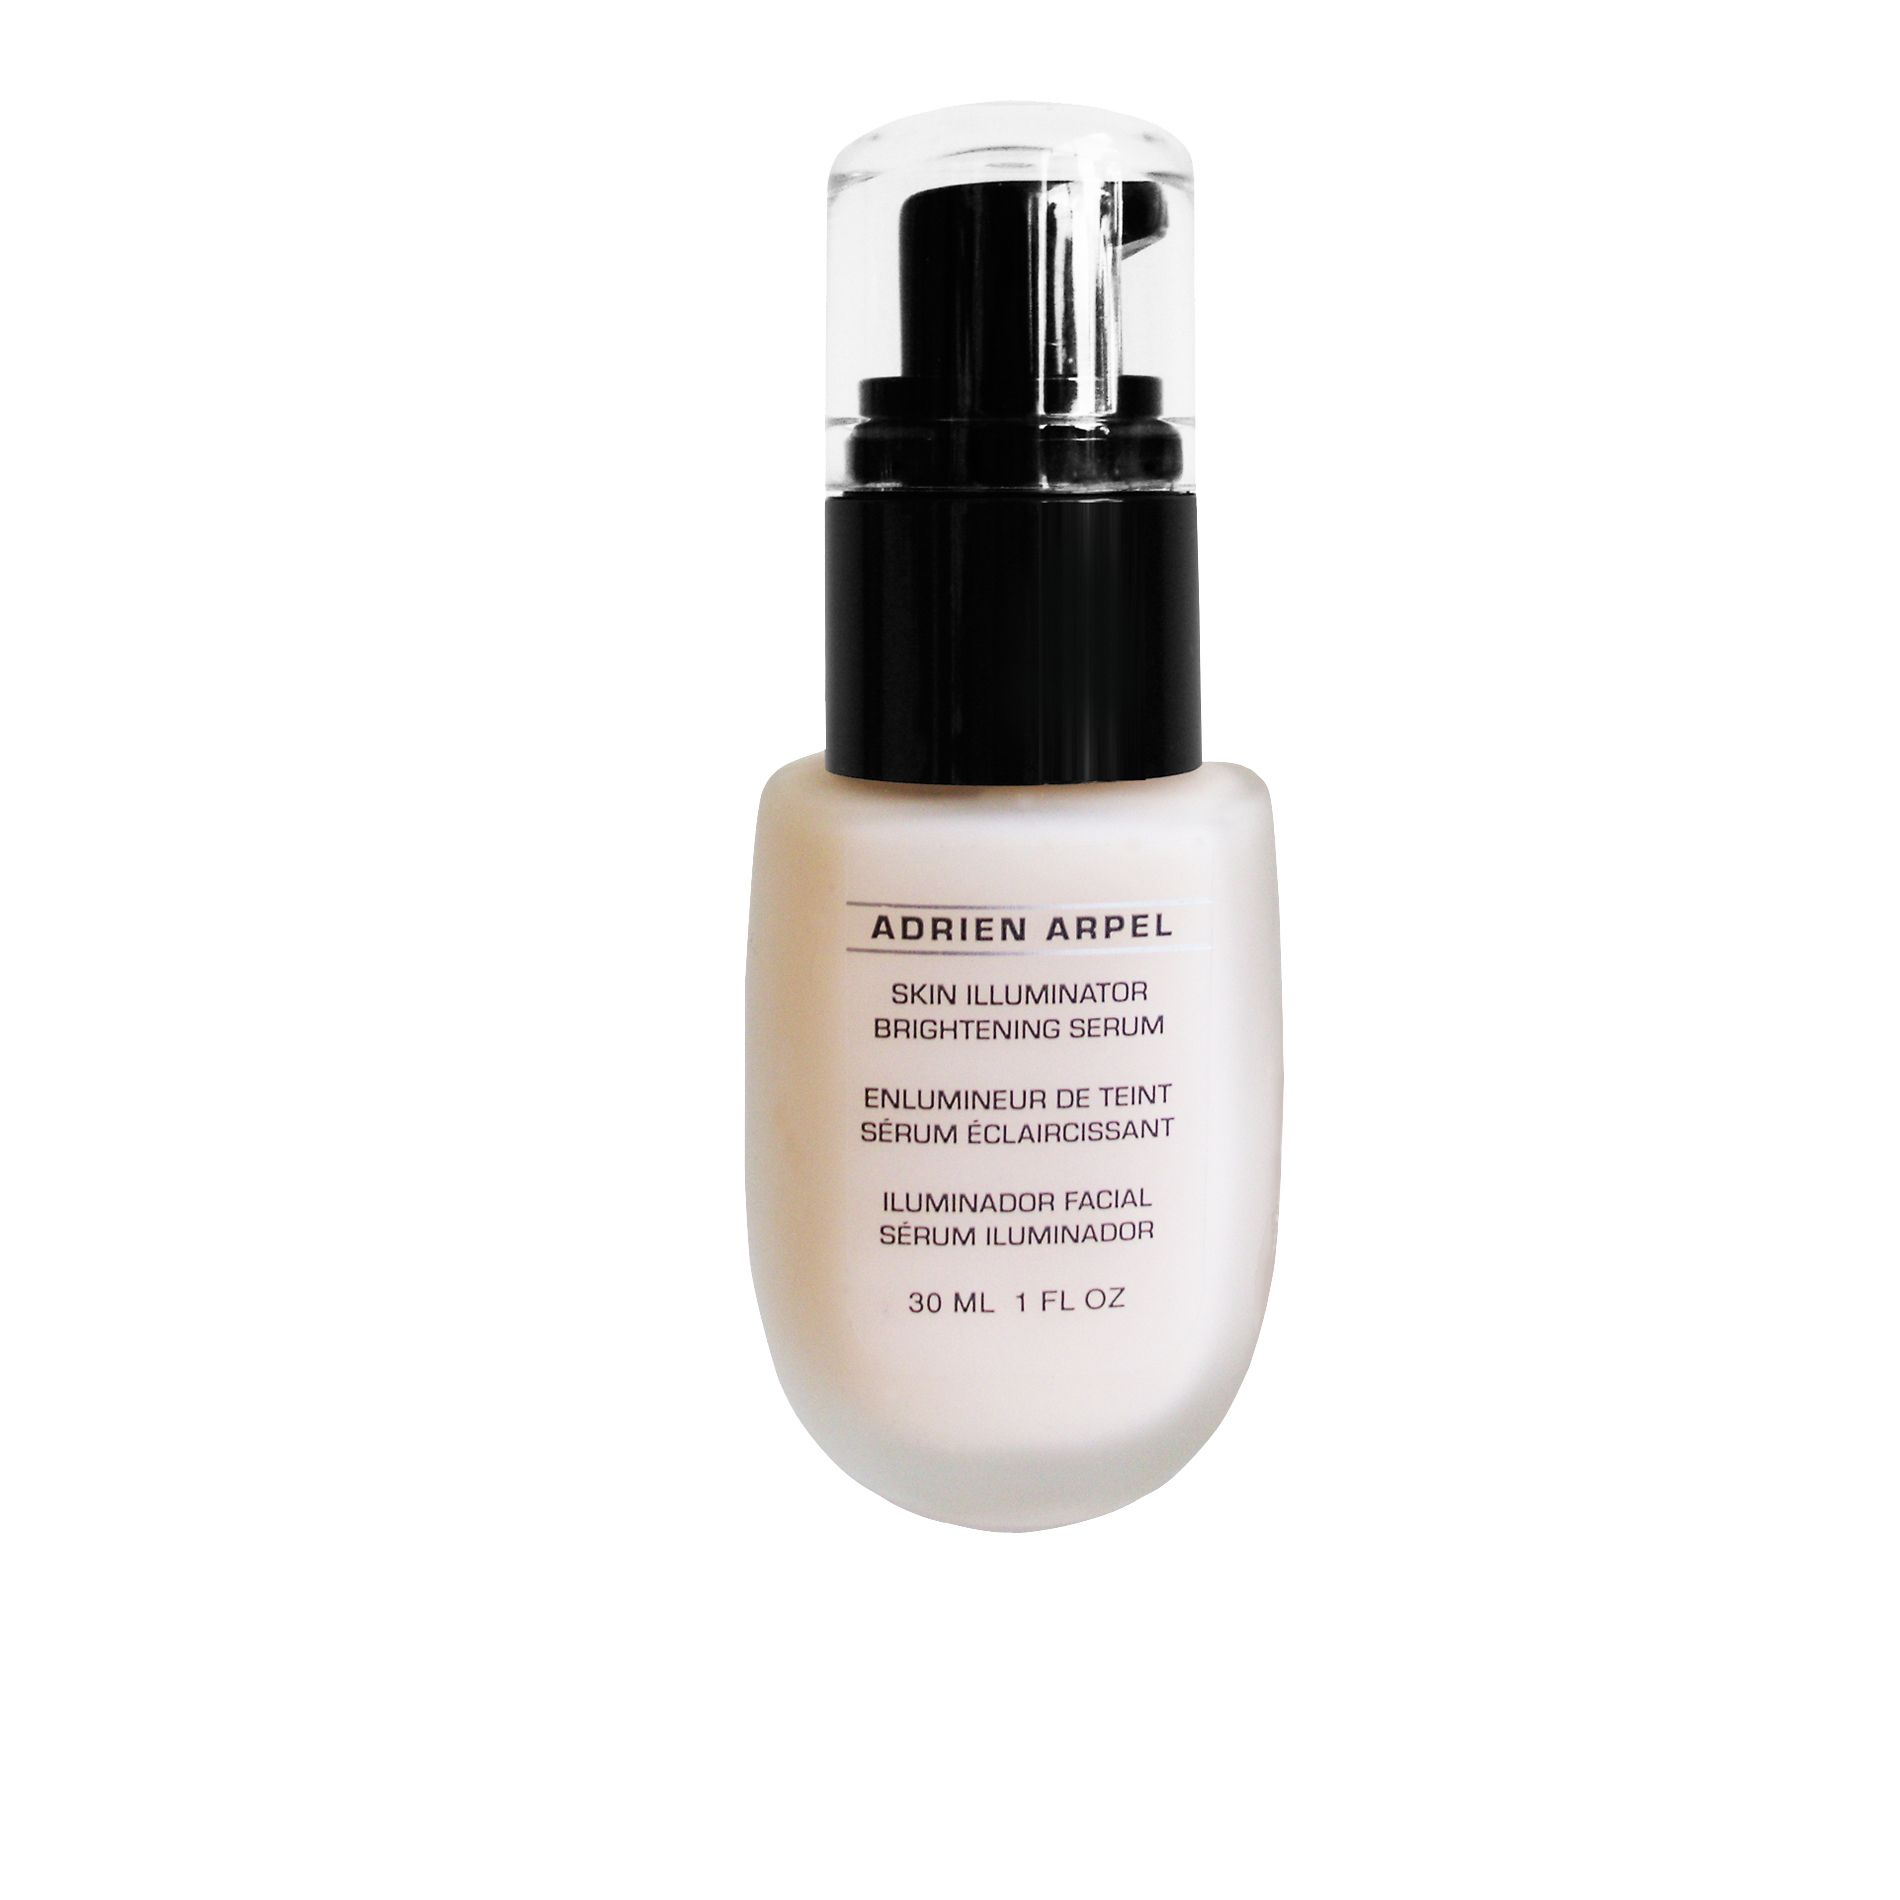 Adrien Arpel Skin Illuminator Brightening Serum